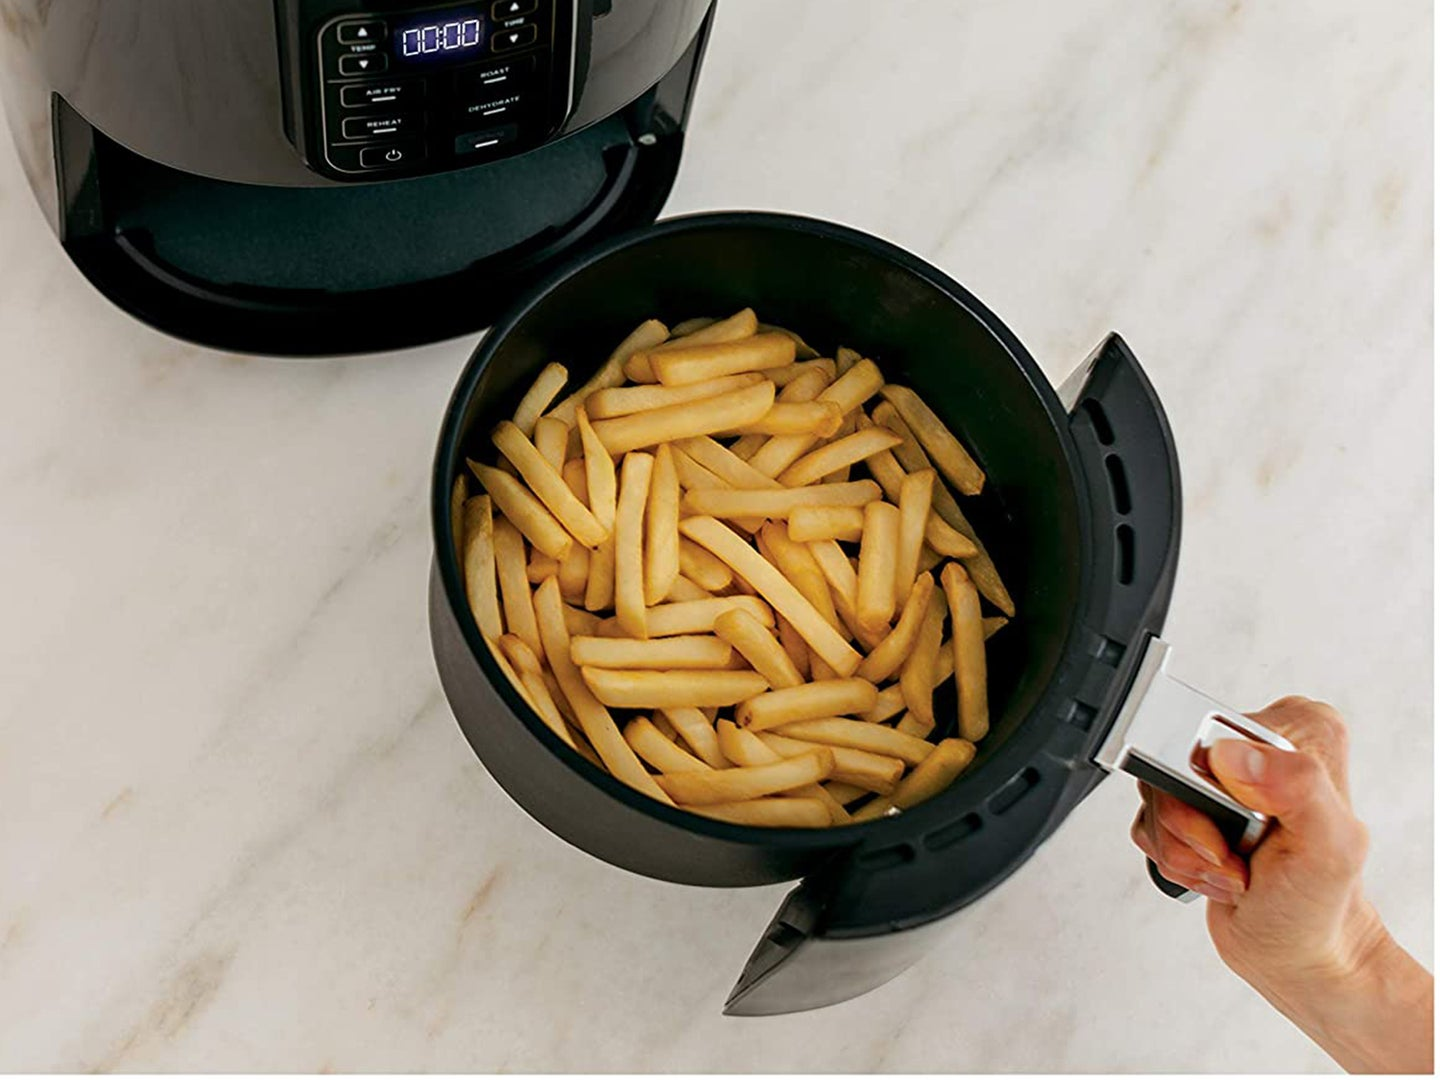 Man cooking french fries in an air fryer